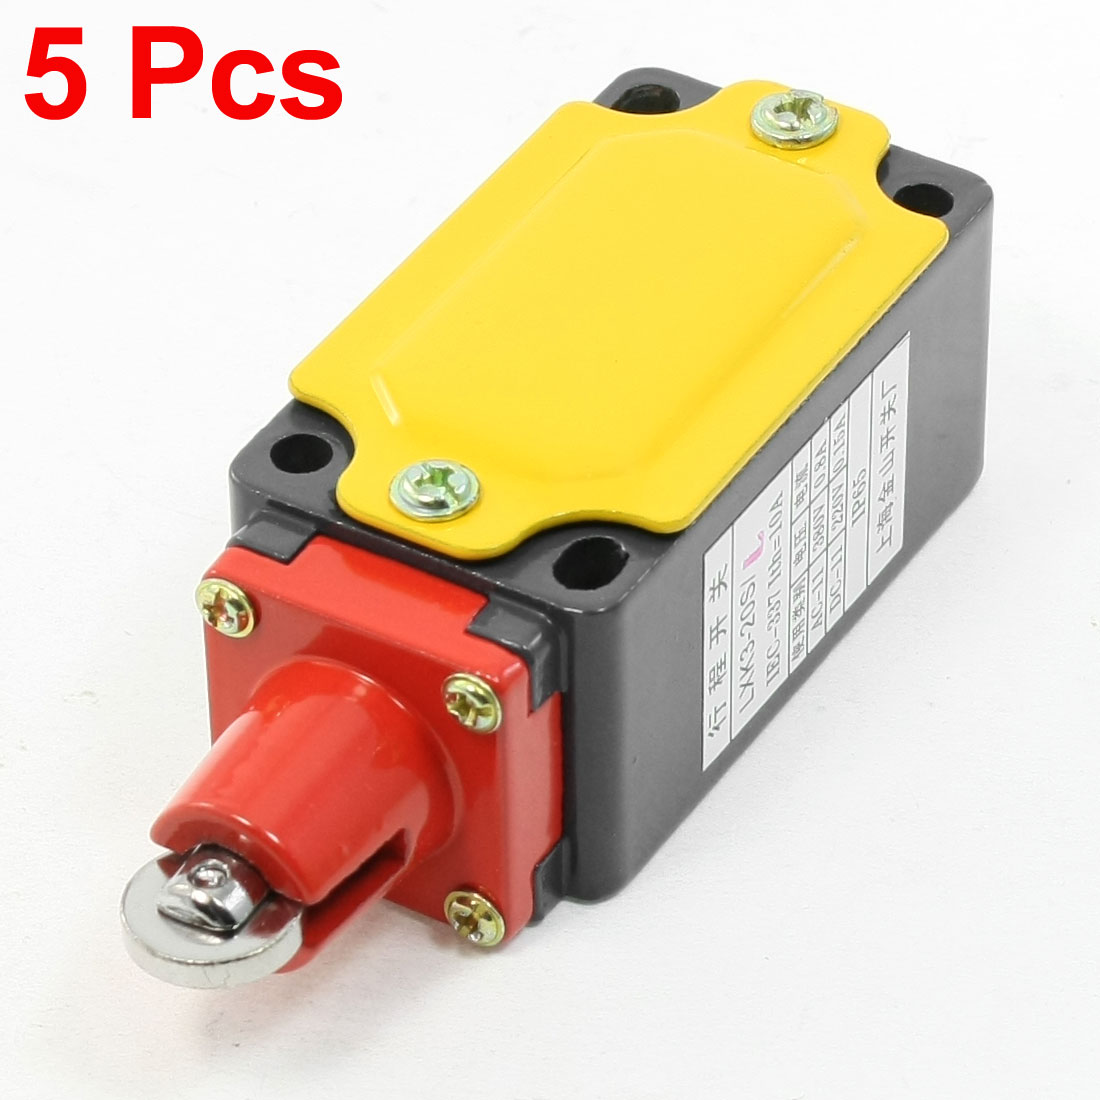 5 Pcs LXK3-20S/L Roller Plunger Momentary Limit Switch 0.8A/380VAC 0.15A/220VDC